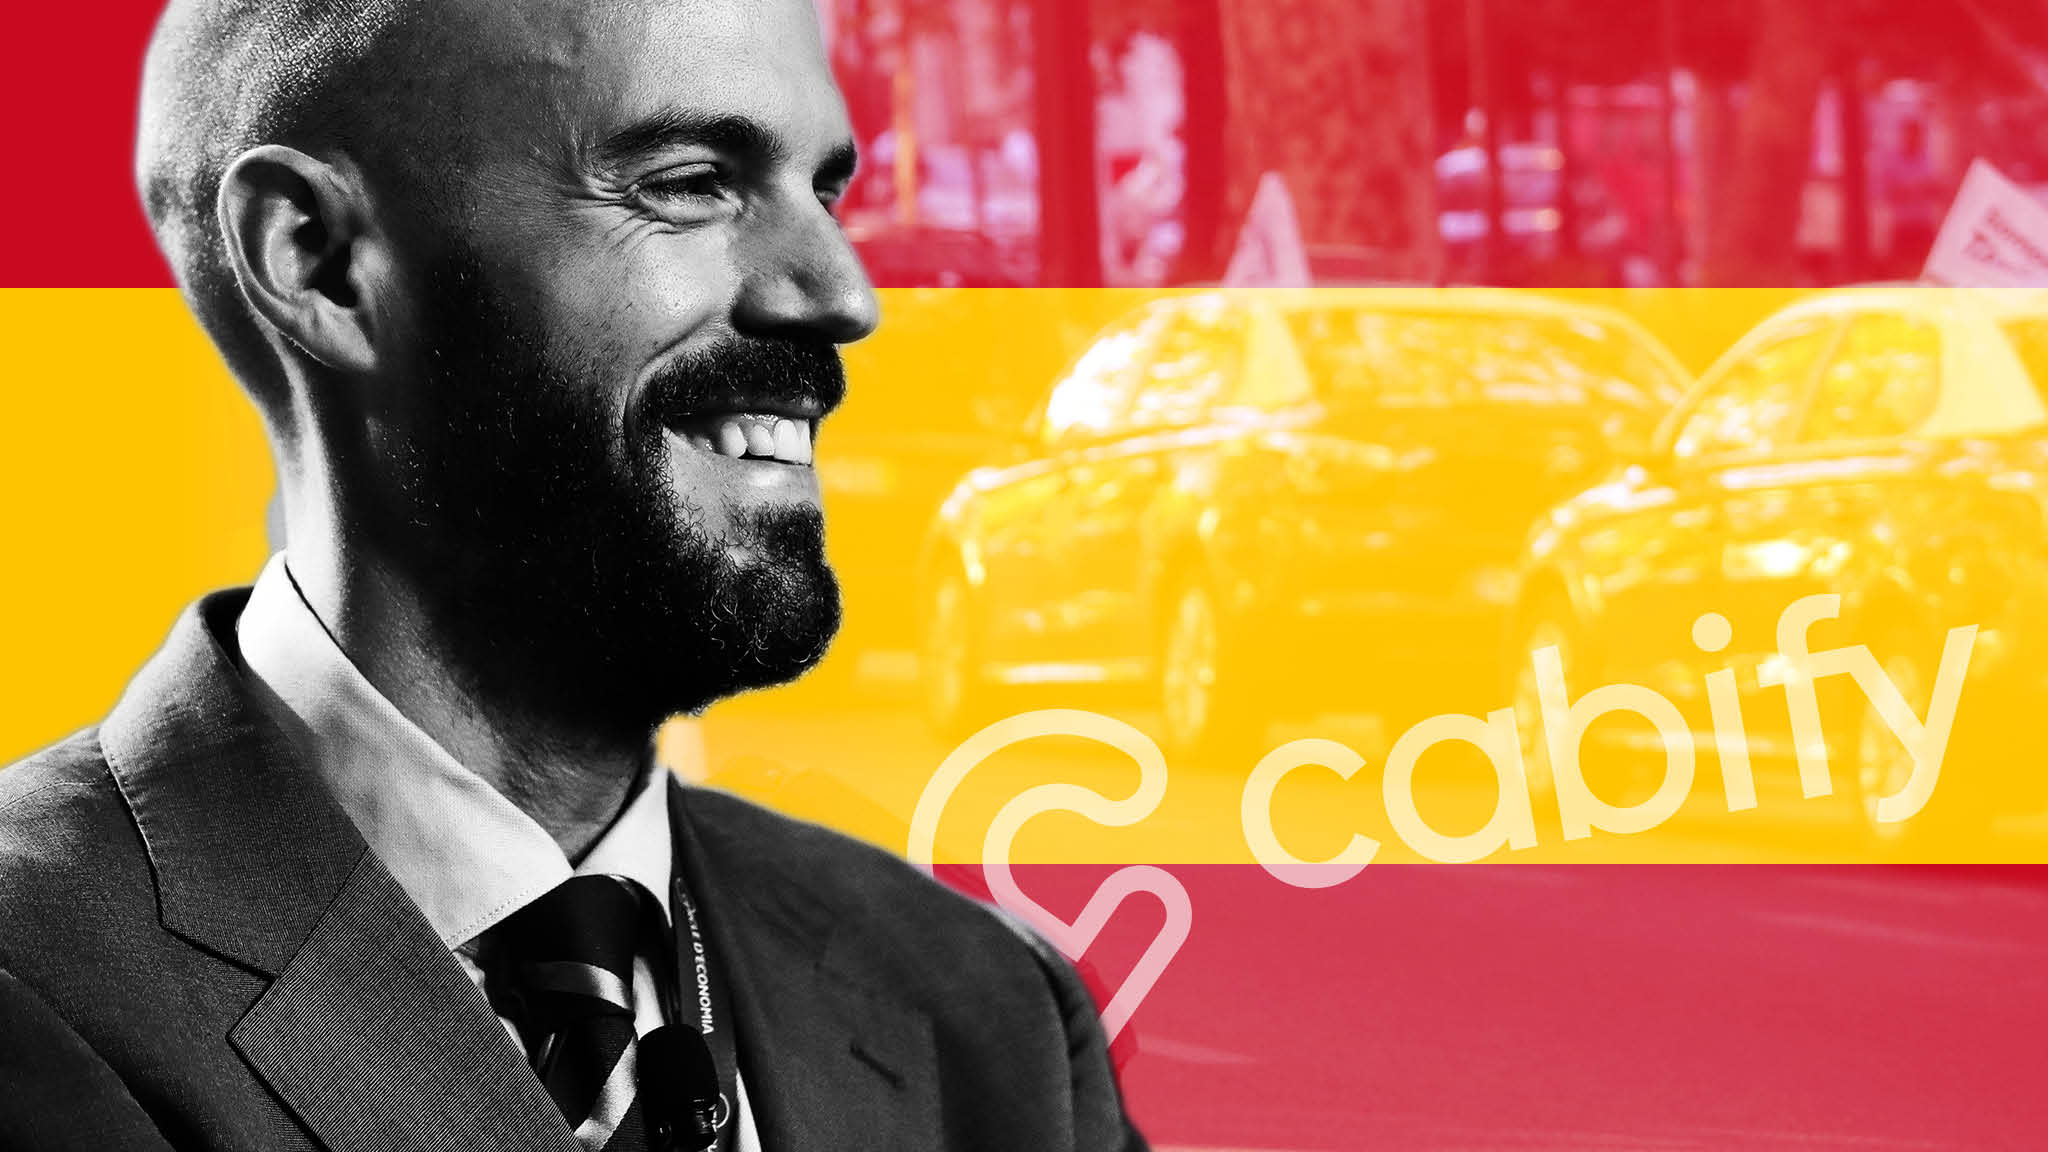 Cabify boss urges Madrid to promote innovation or fall behind